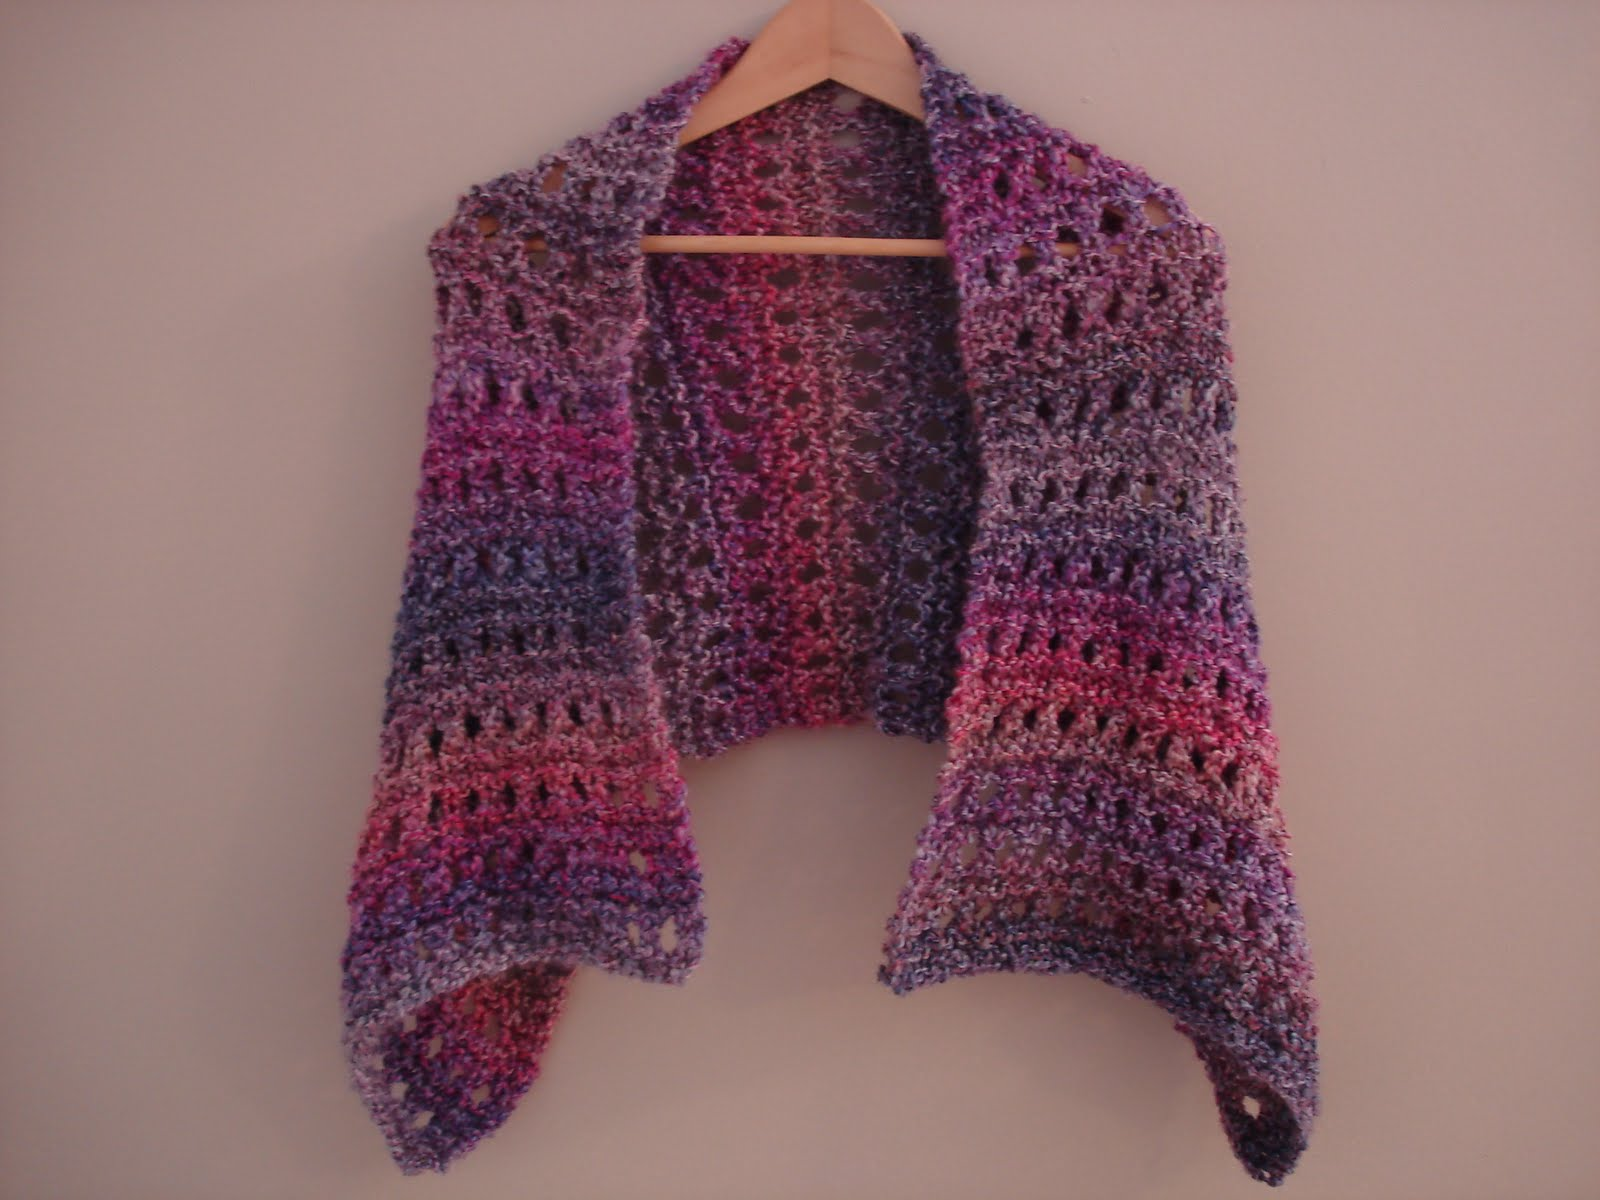 Easy Shawl Knitting Patterns Free Magnificent Inspiration Ideas